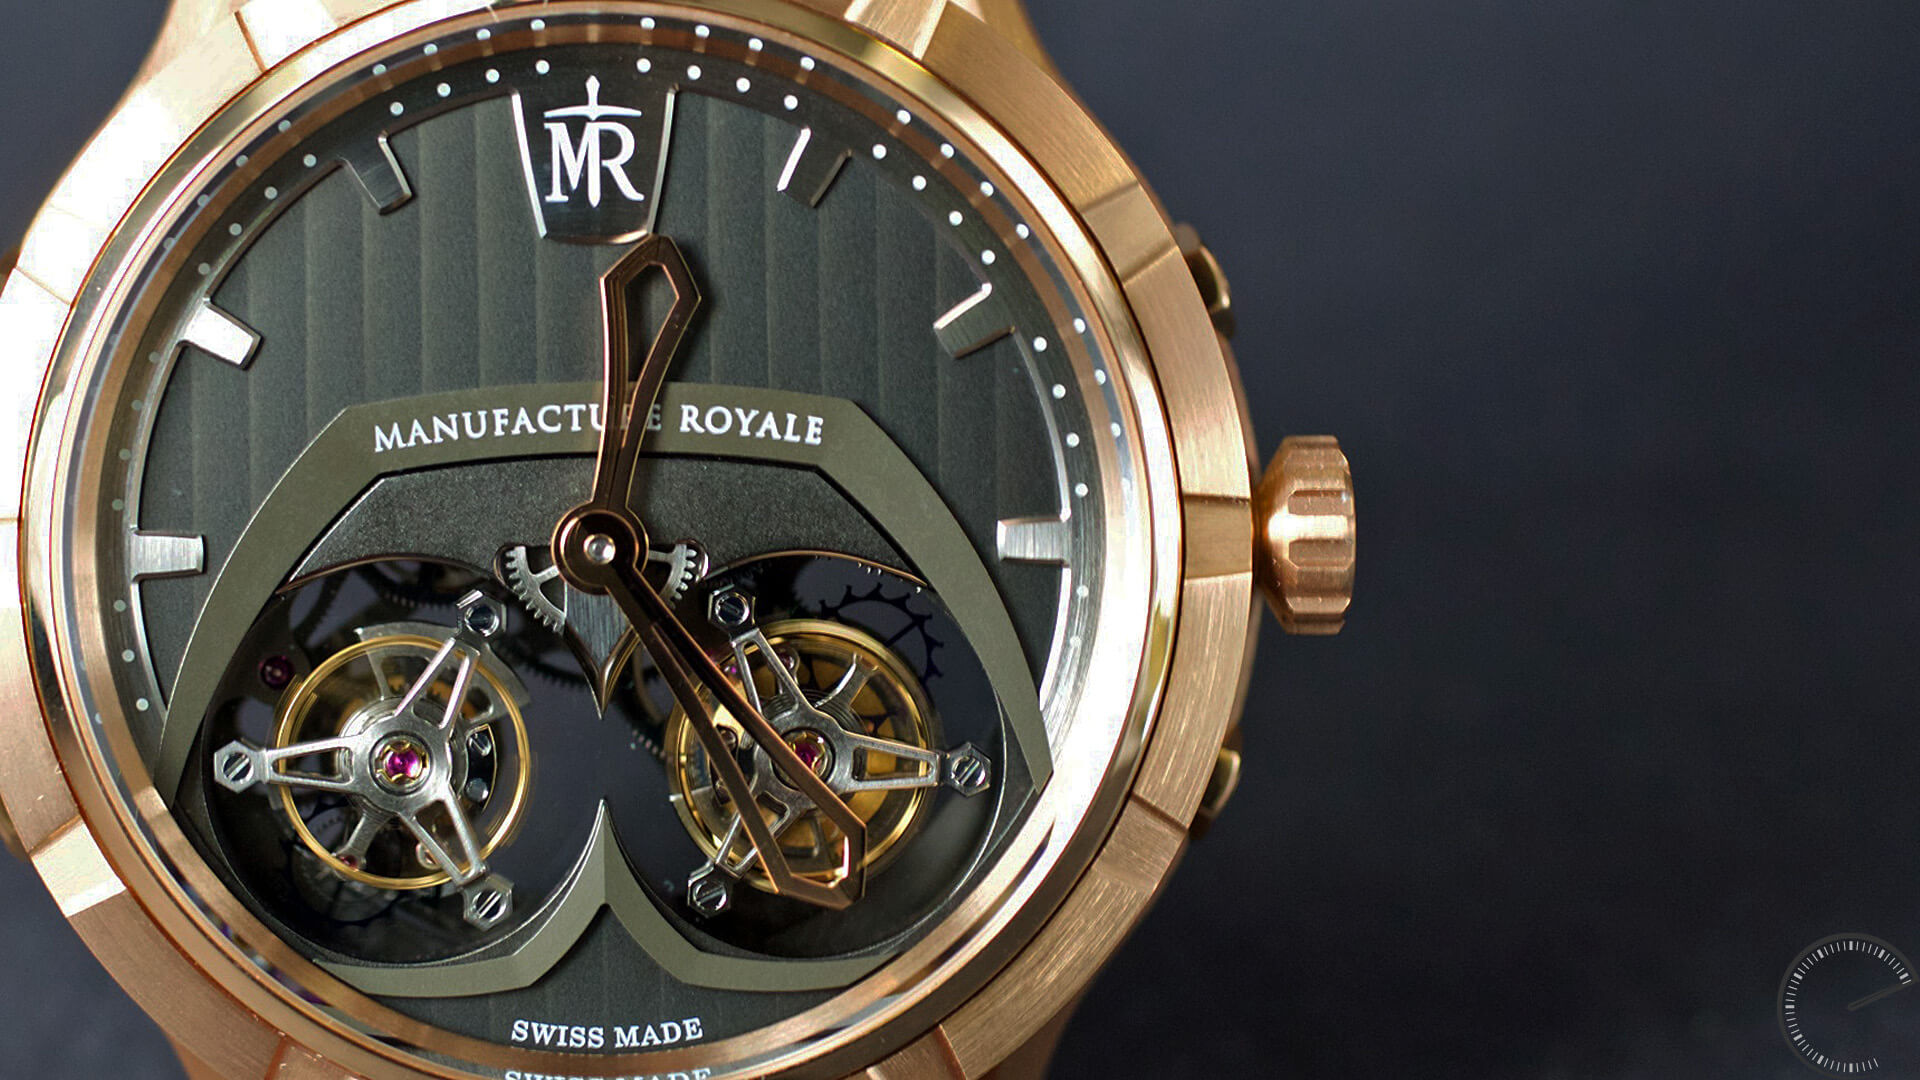 Manufacture Royale 1770 Micromegas_dial - ESCAPEMENT magazine - hands-on watch reviews by Angus Davies